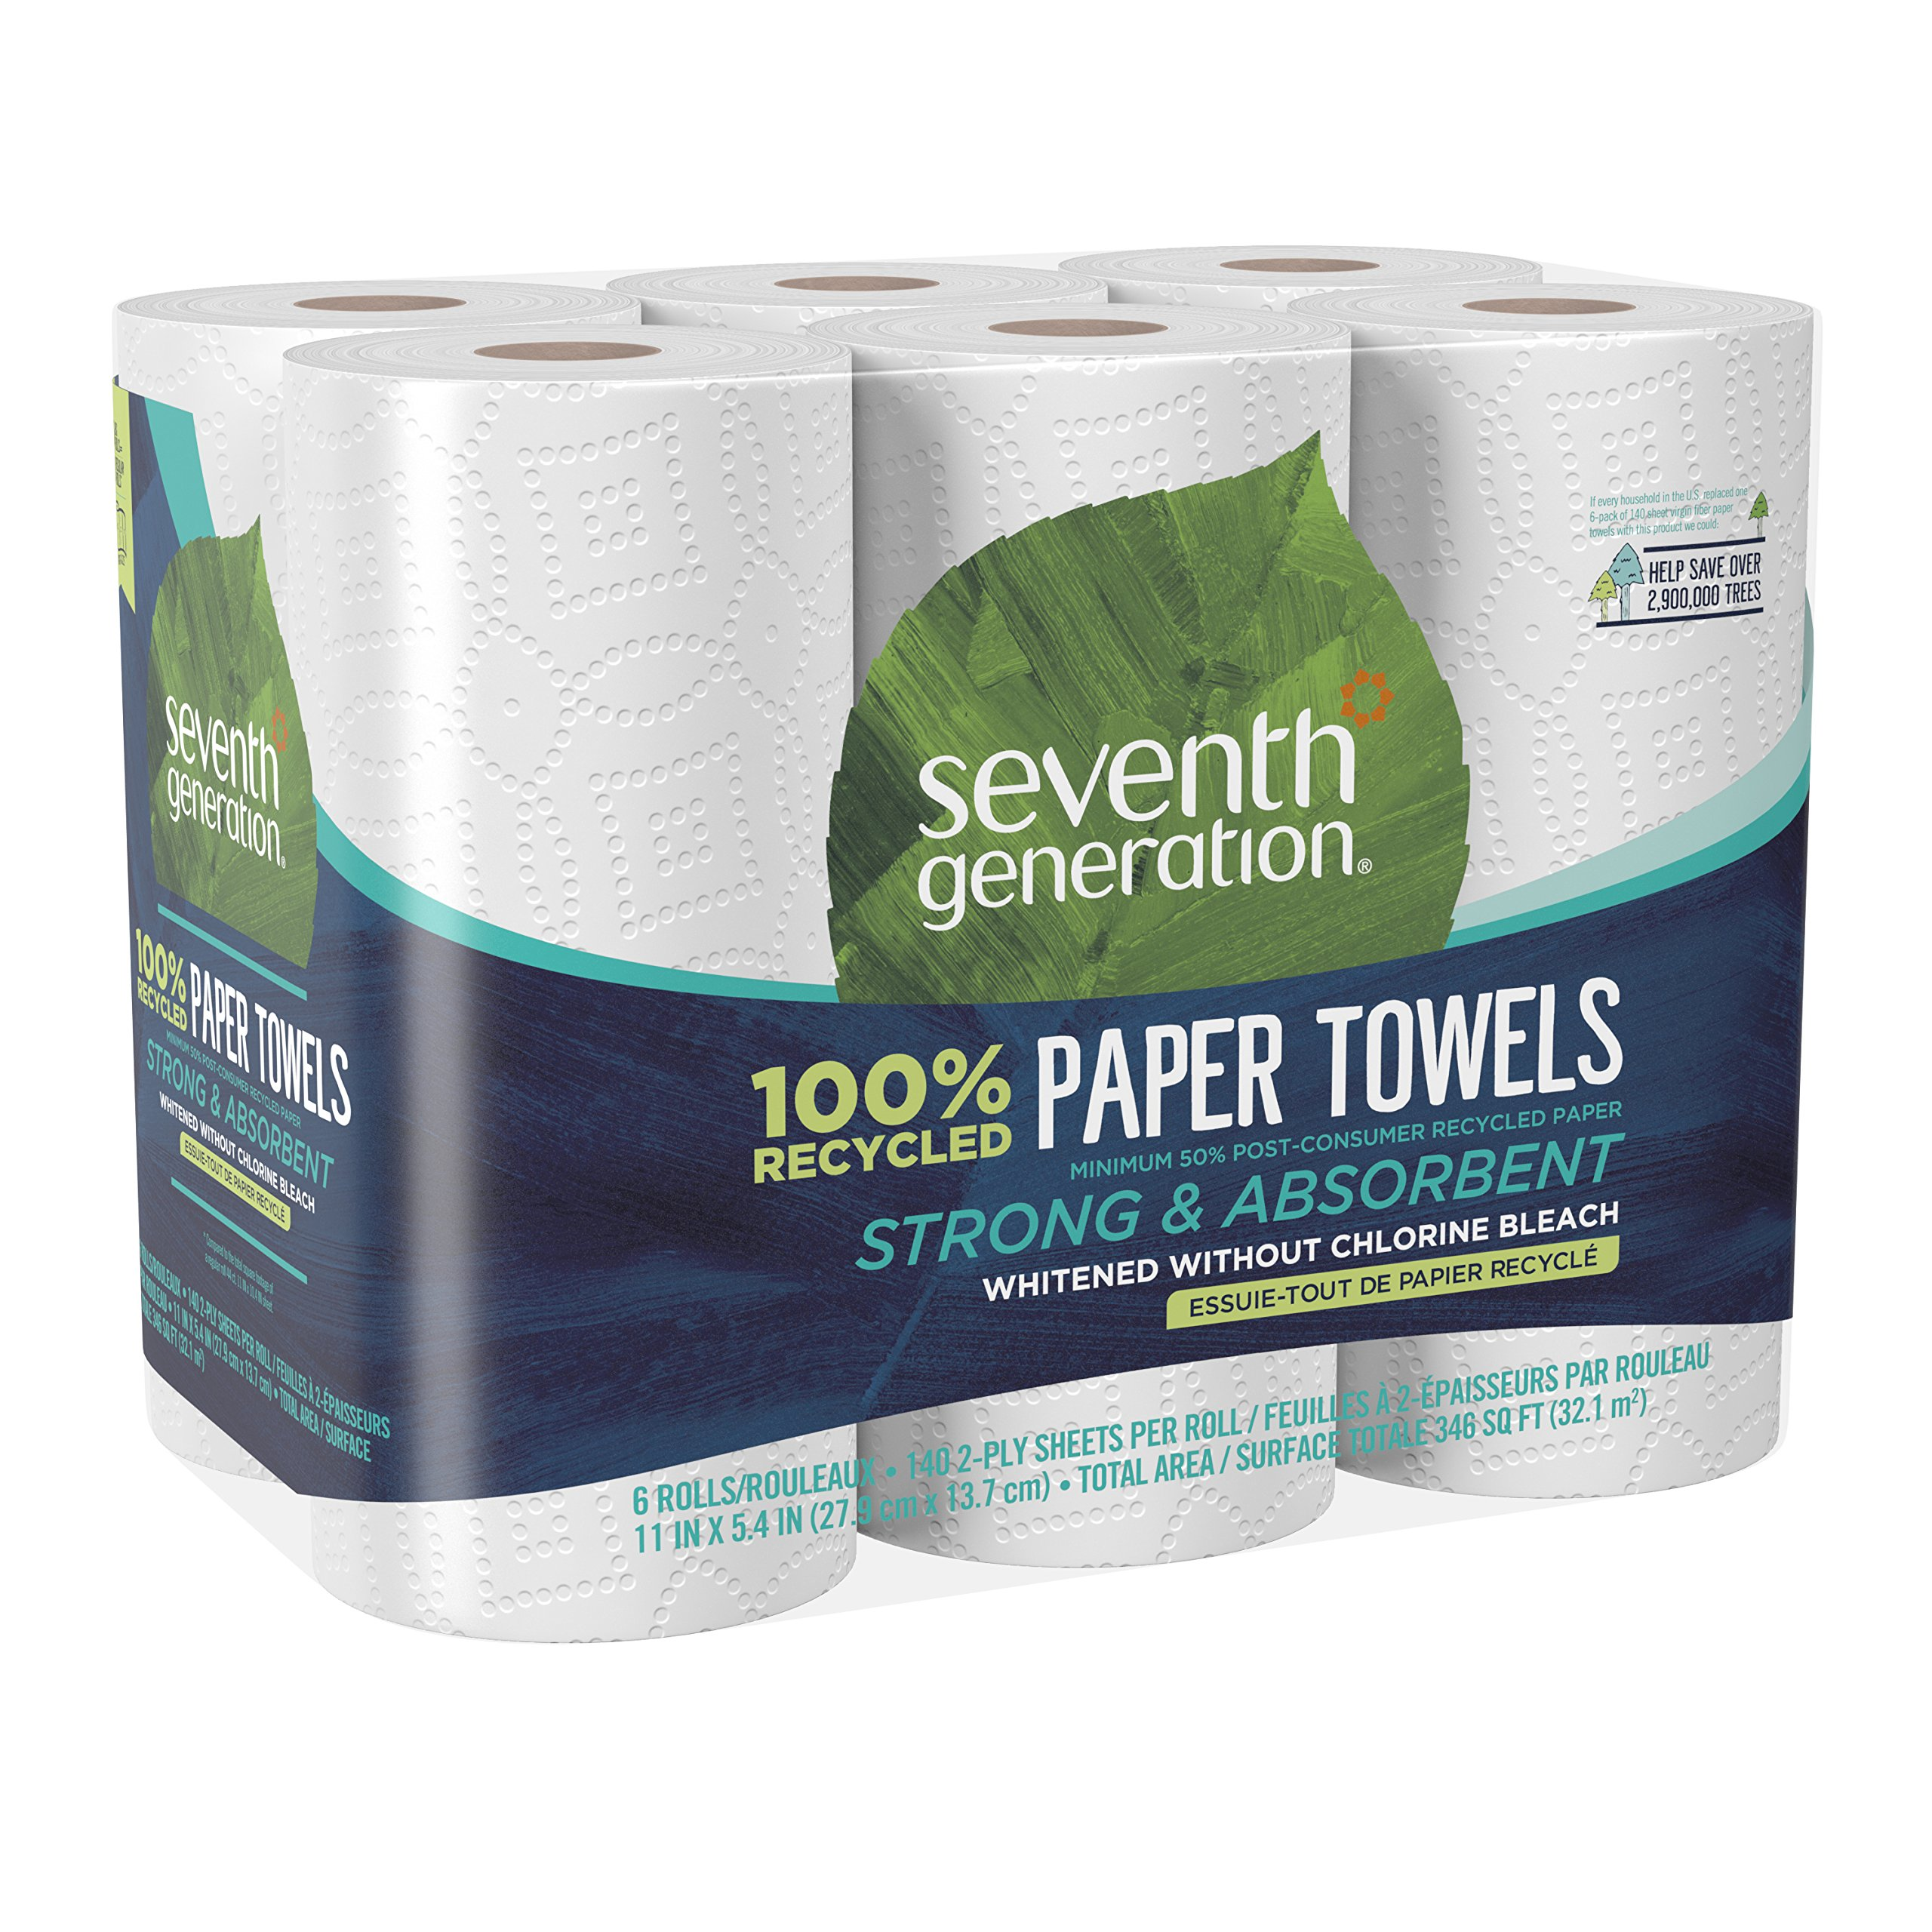 Seventh Generation Paper Towels, 100% Recycled Paper, 2-ply, 6-Count (Pack of 4) by Seventh Generation (Image #10)